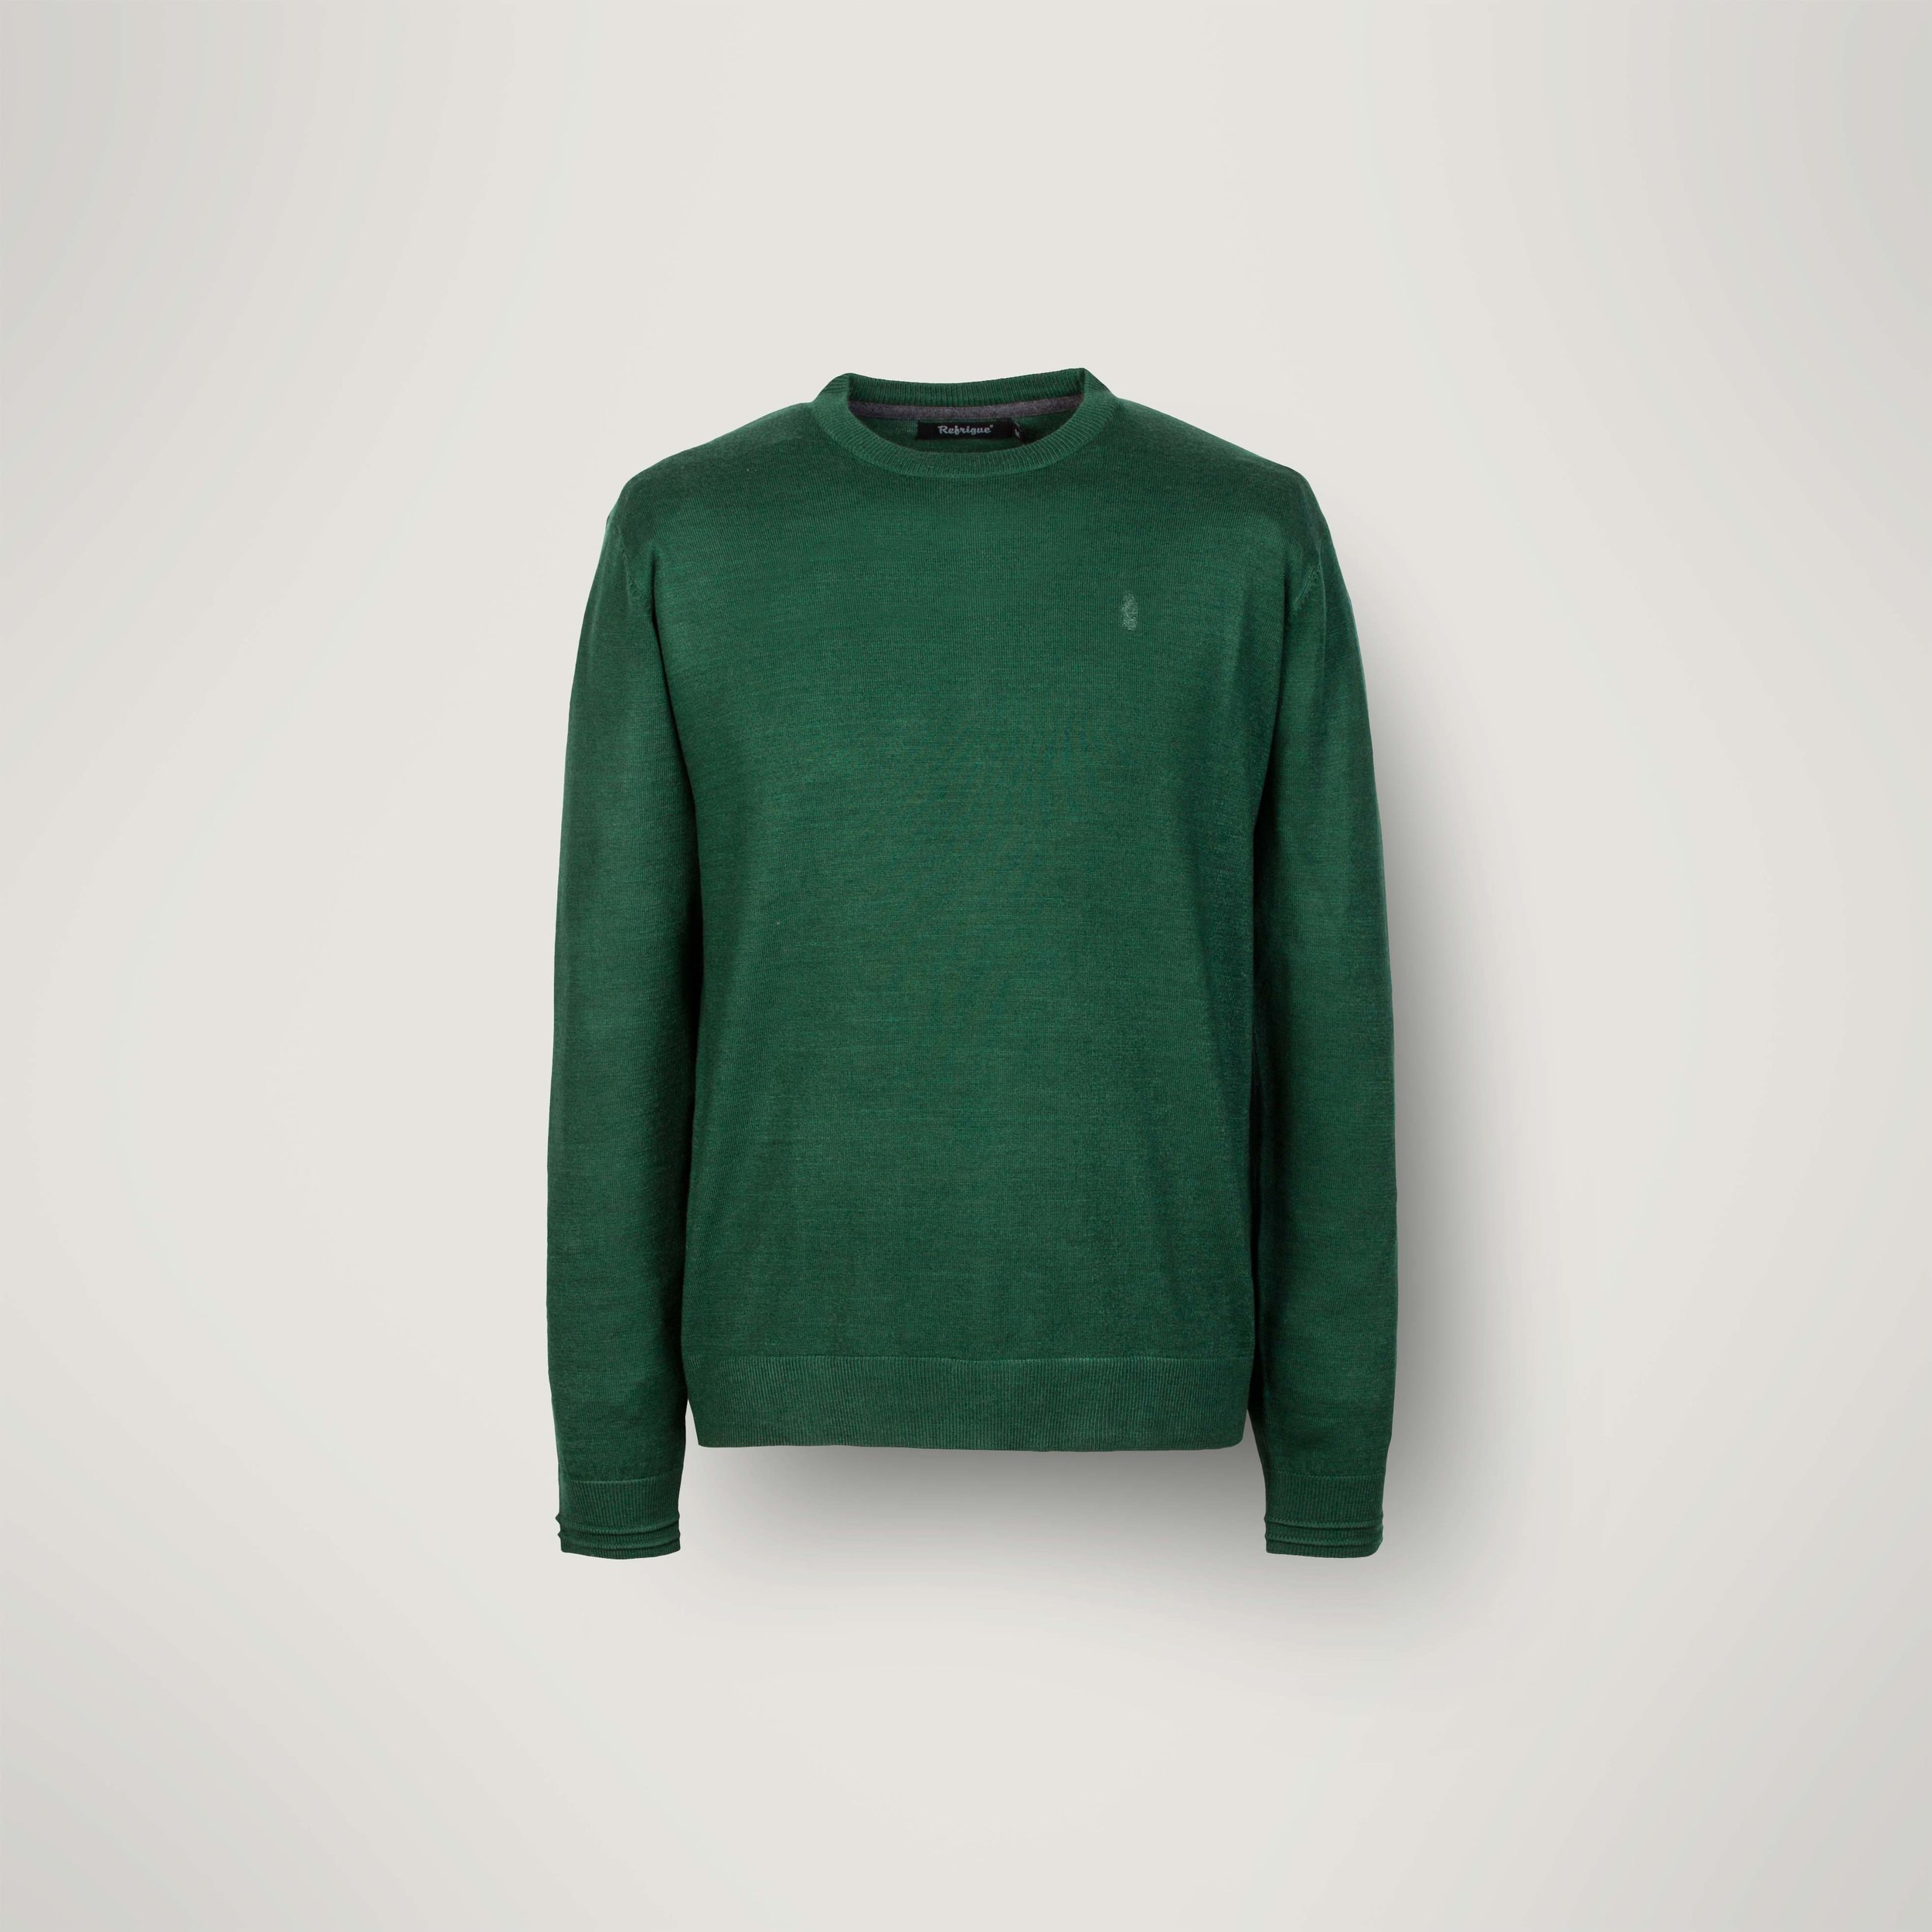 AV---R40537AVU2M-SWEATER.jpg